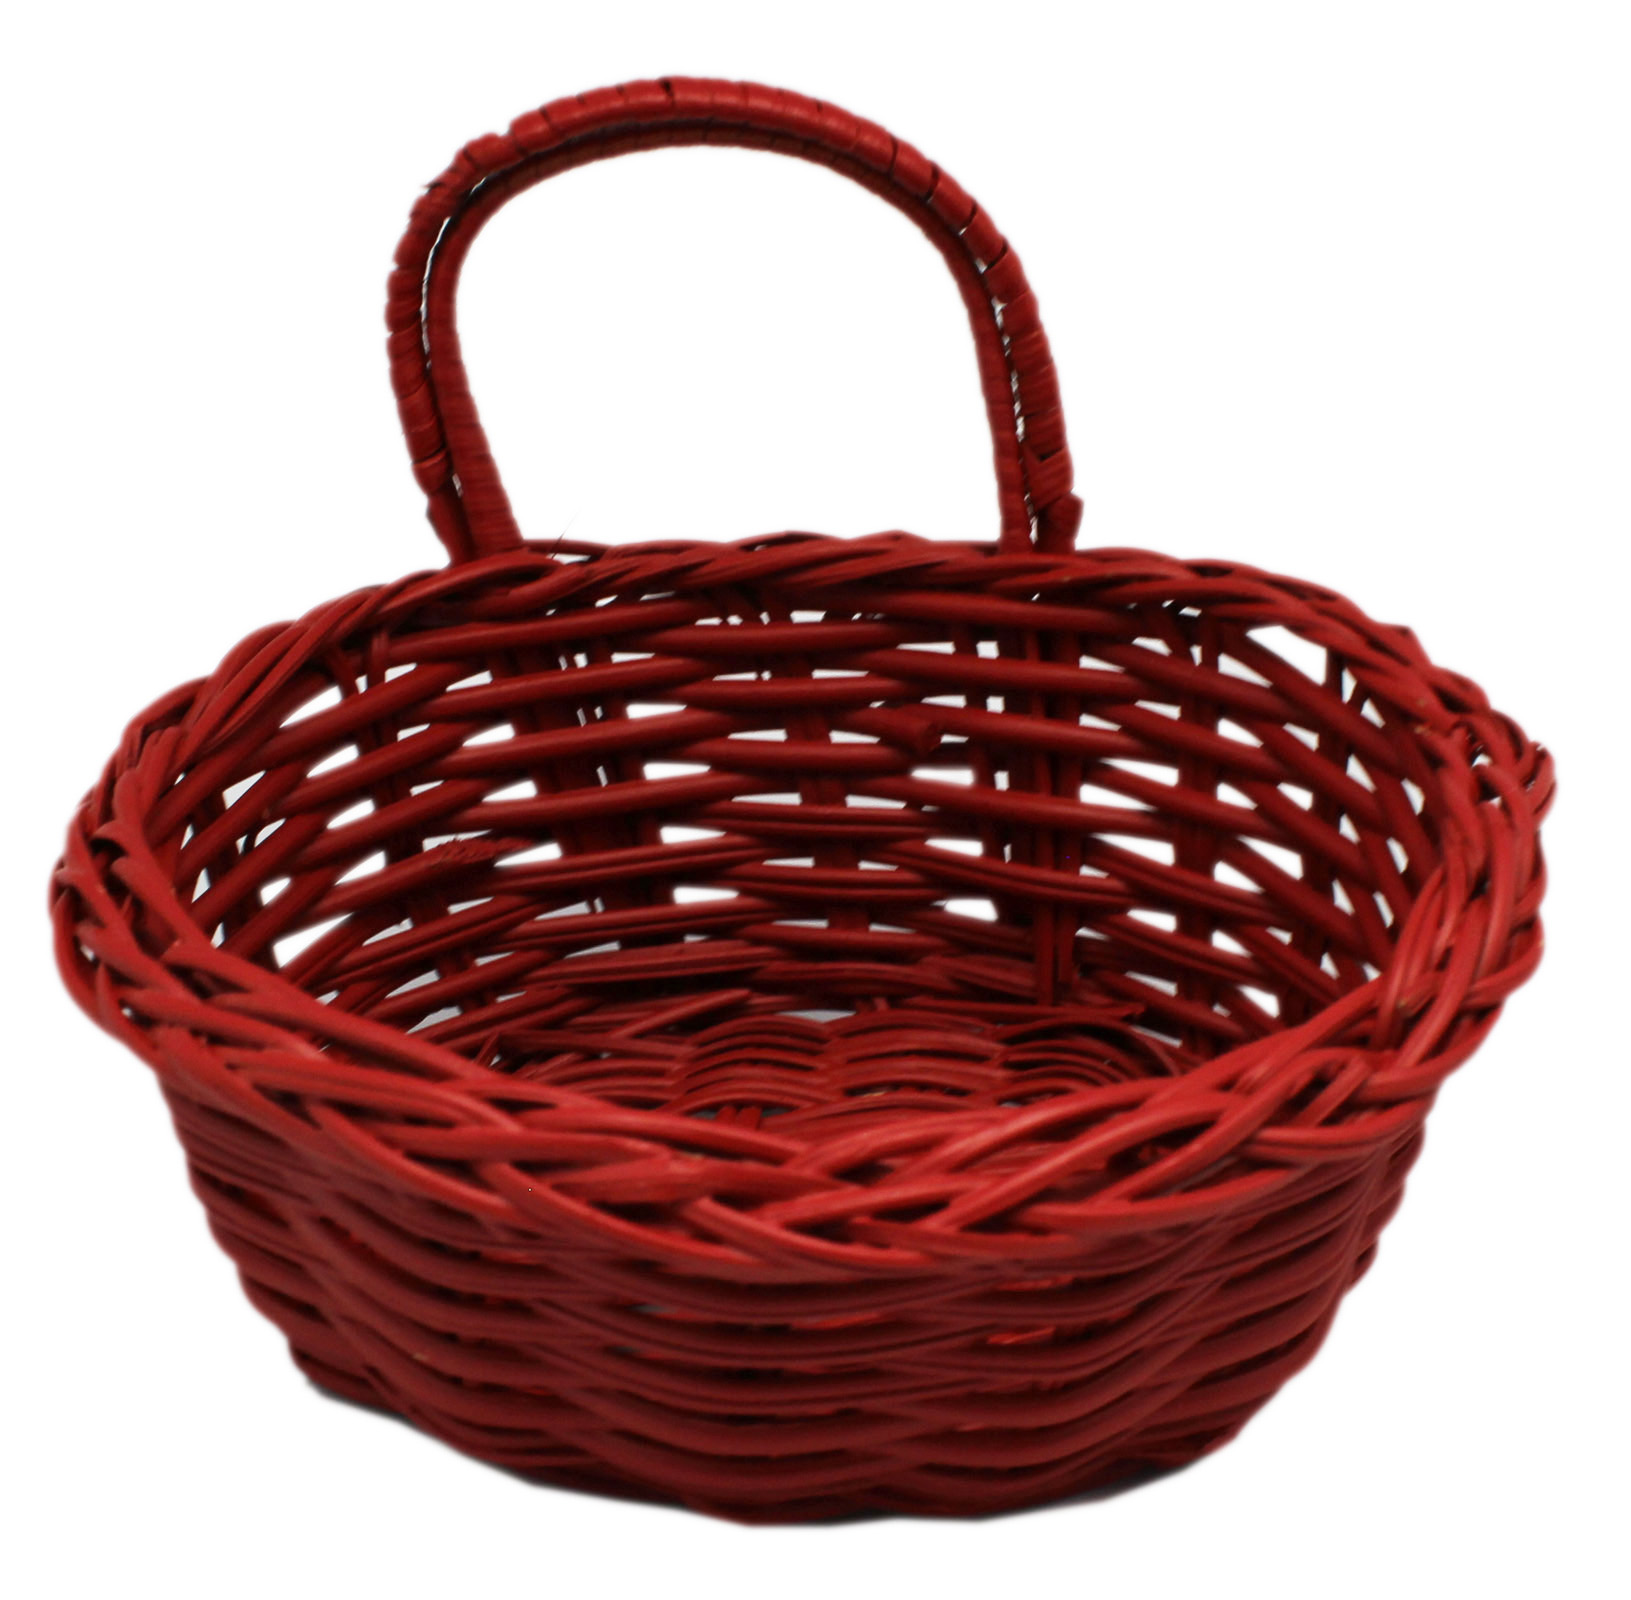 Small Red Colored Decorative Wicker Basket